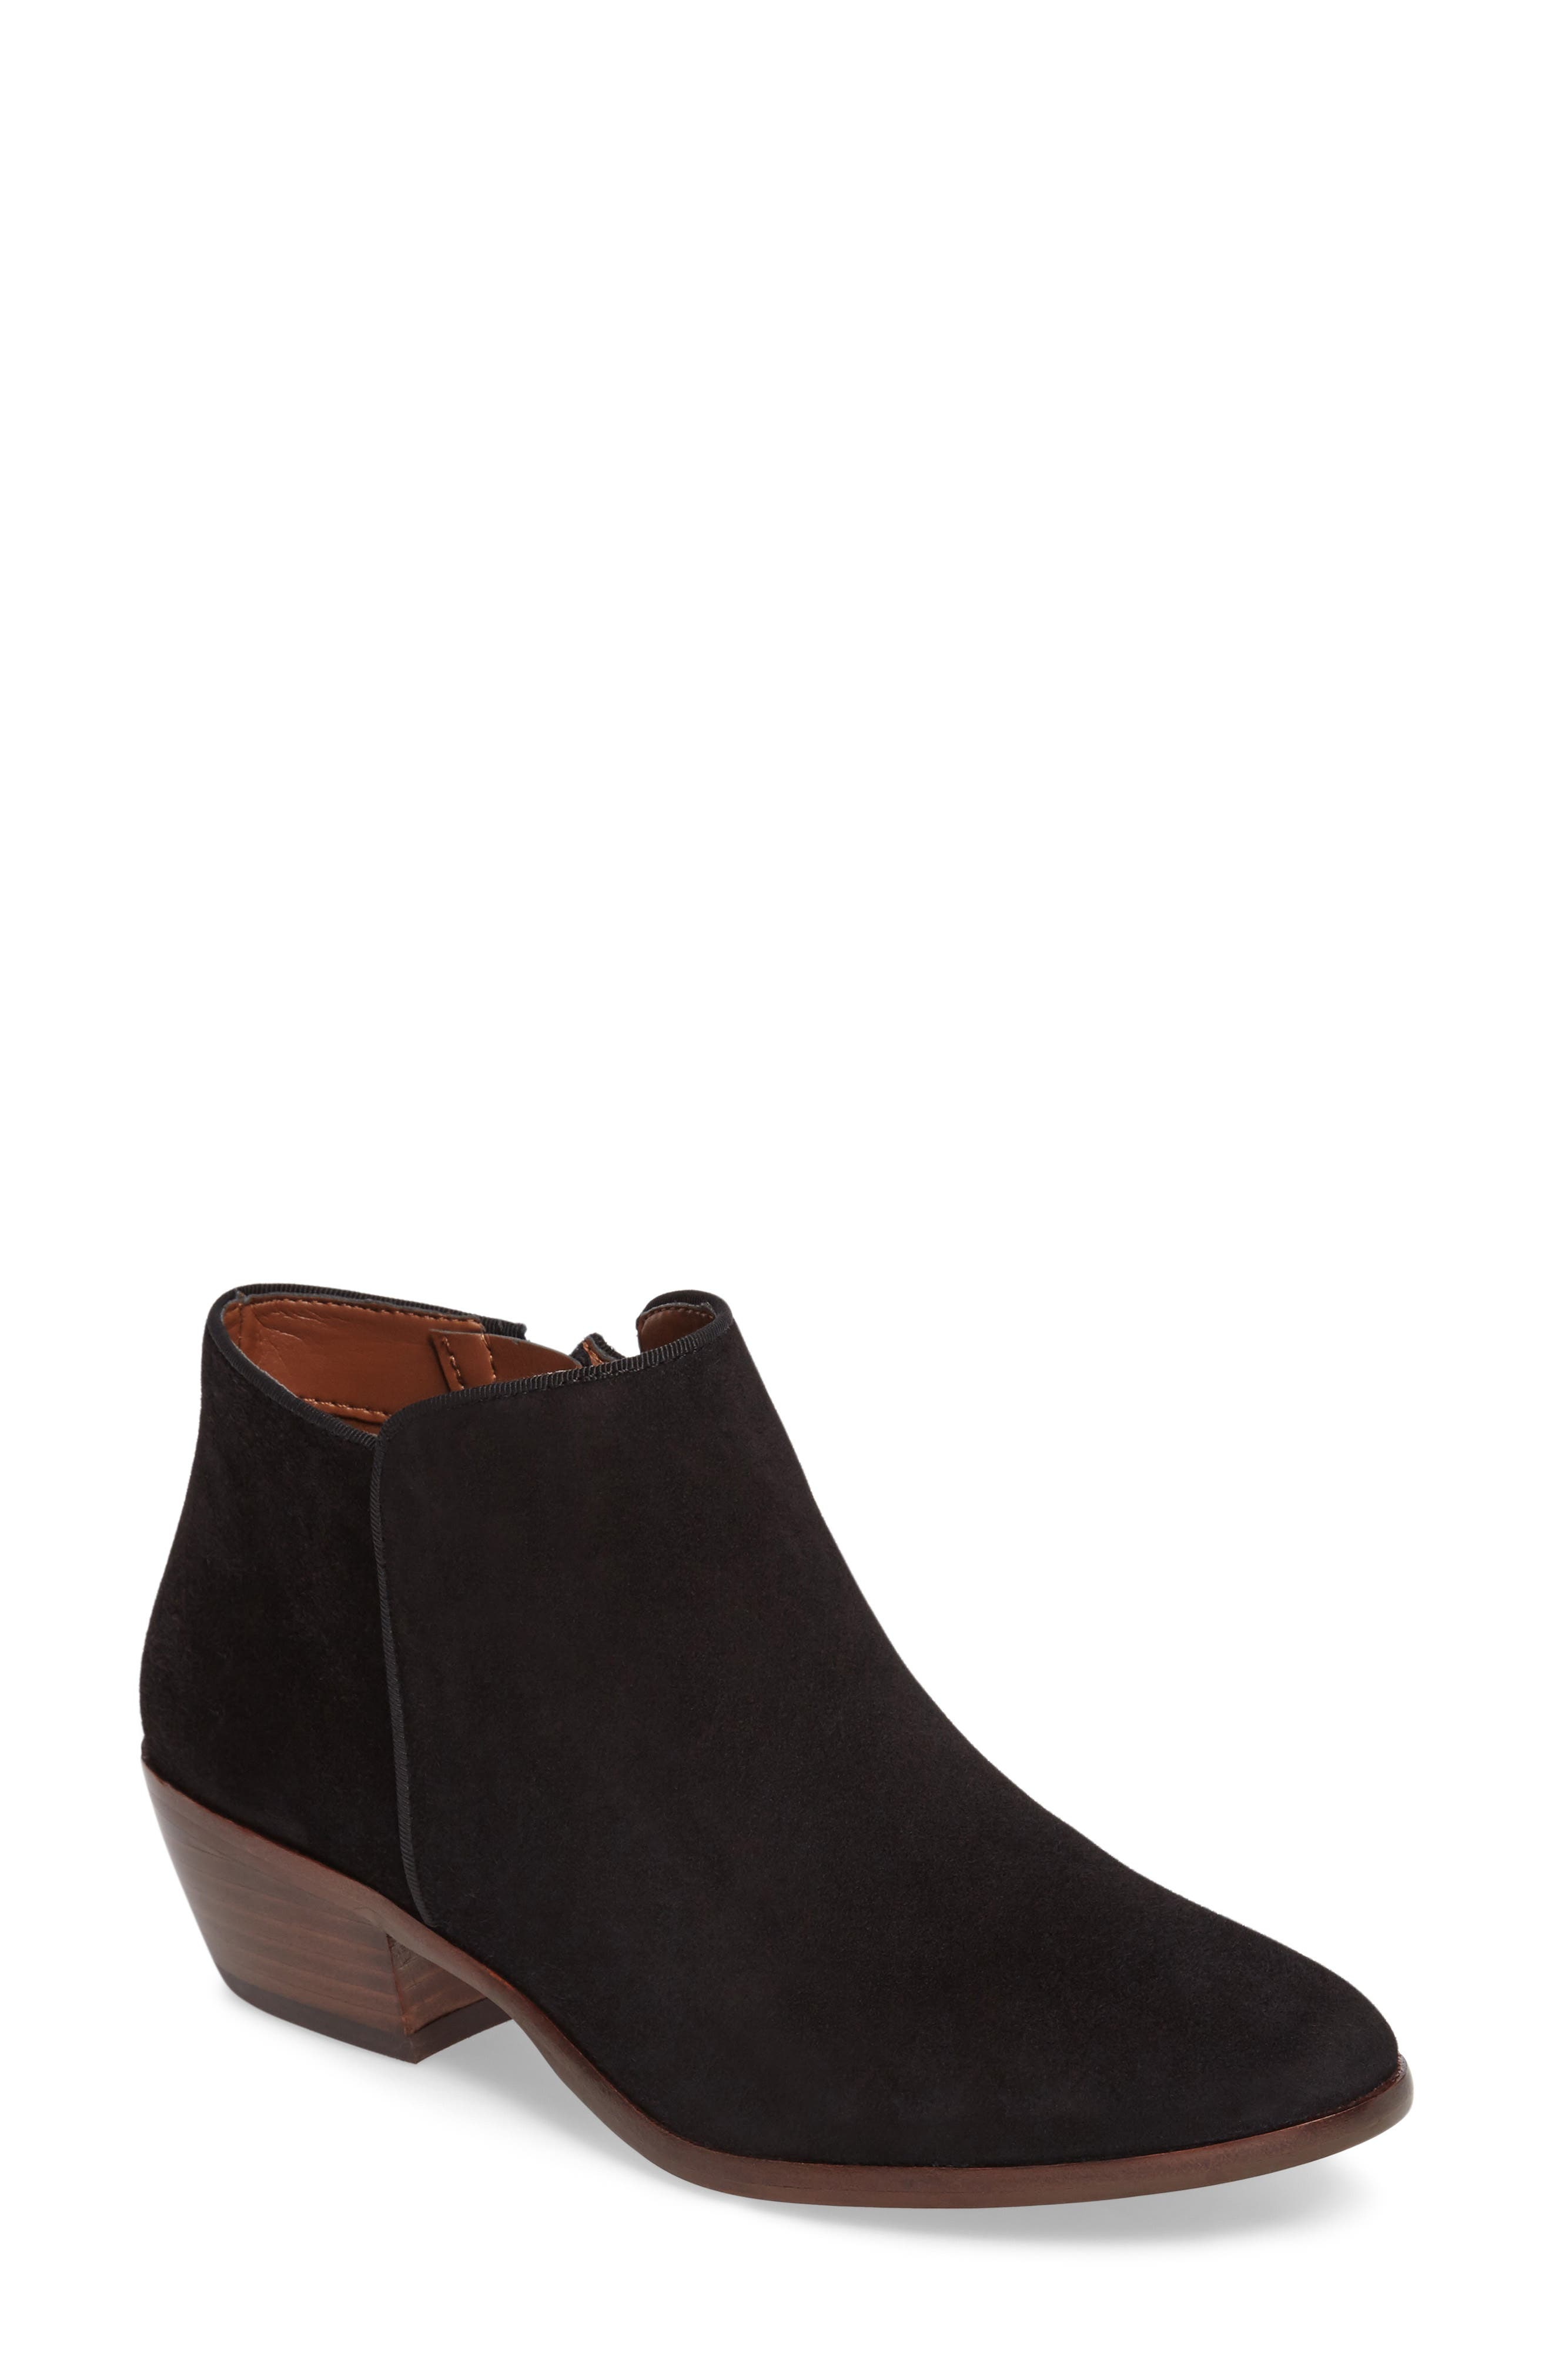 SAM EDELMAN, 'Petty' Chelsea Boot, Main thumbnail 1, color, BLACK SUEDE